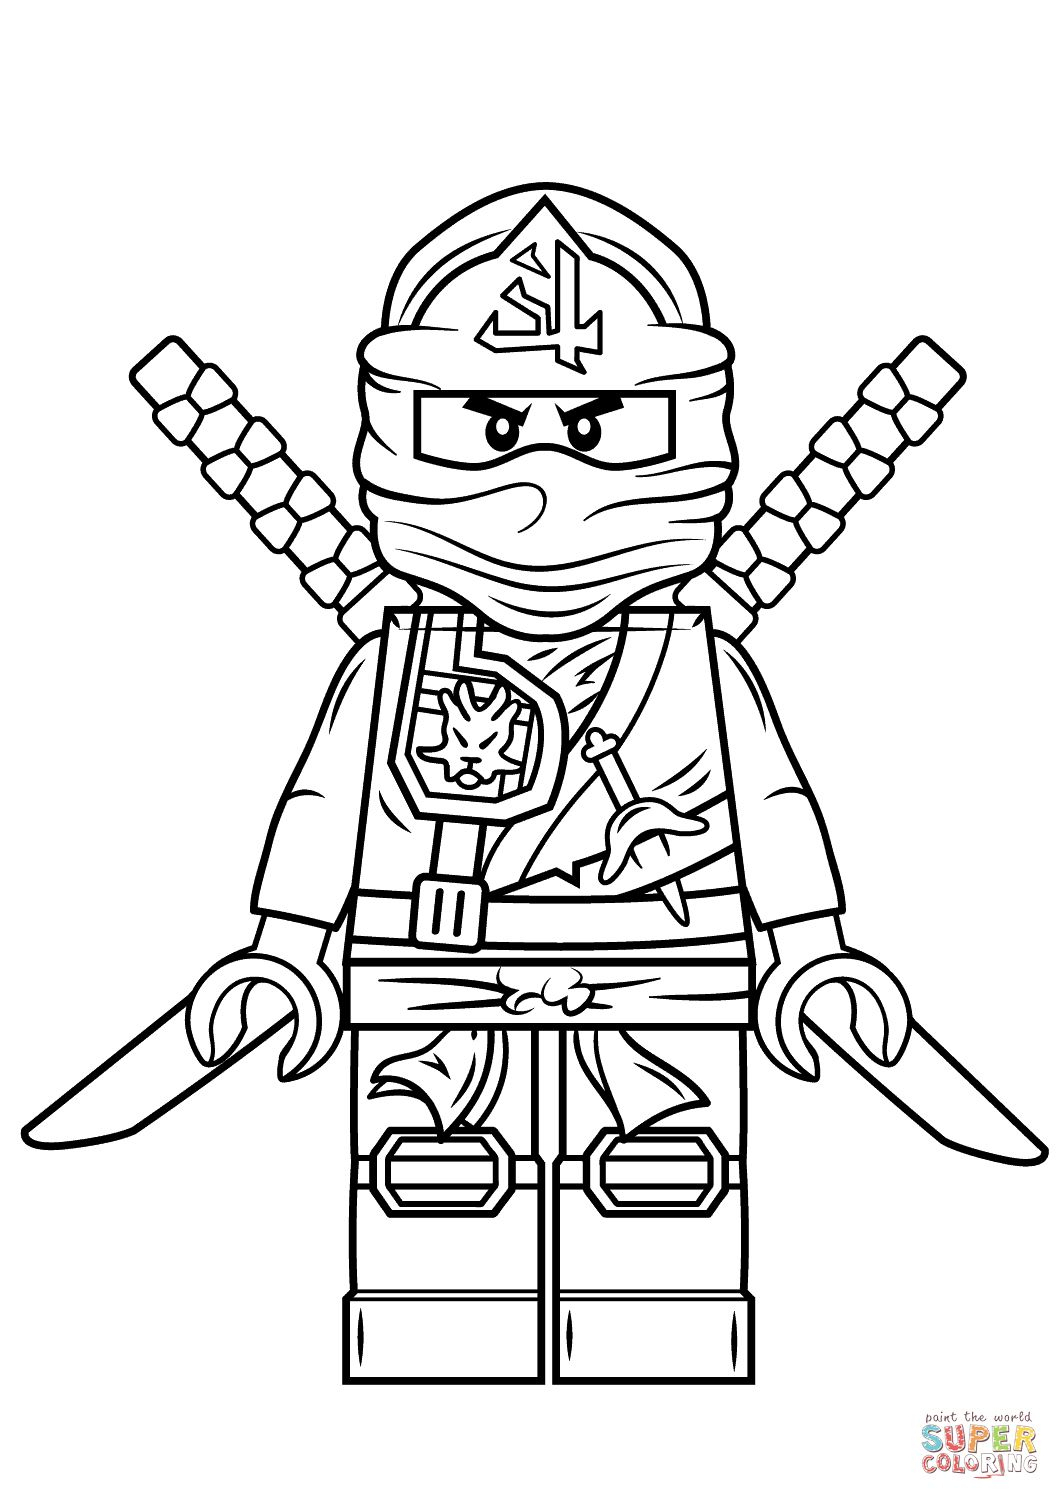 Lego Ninjago Green Ninja | Super Coloring | Birthday Party concernant Coloriage D Épée